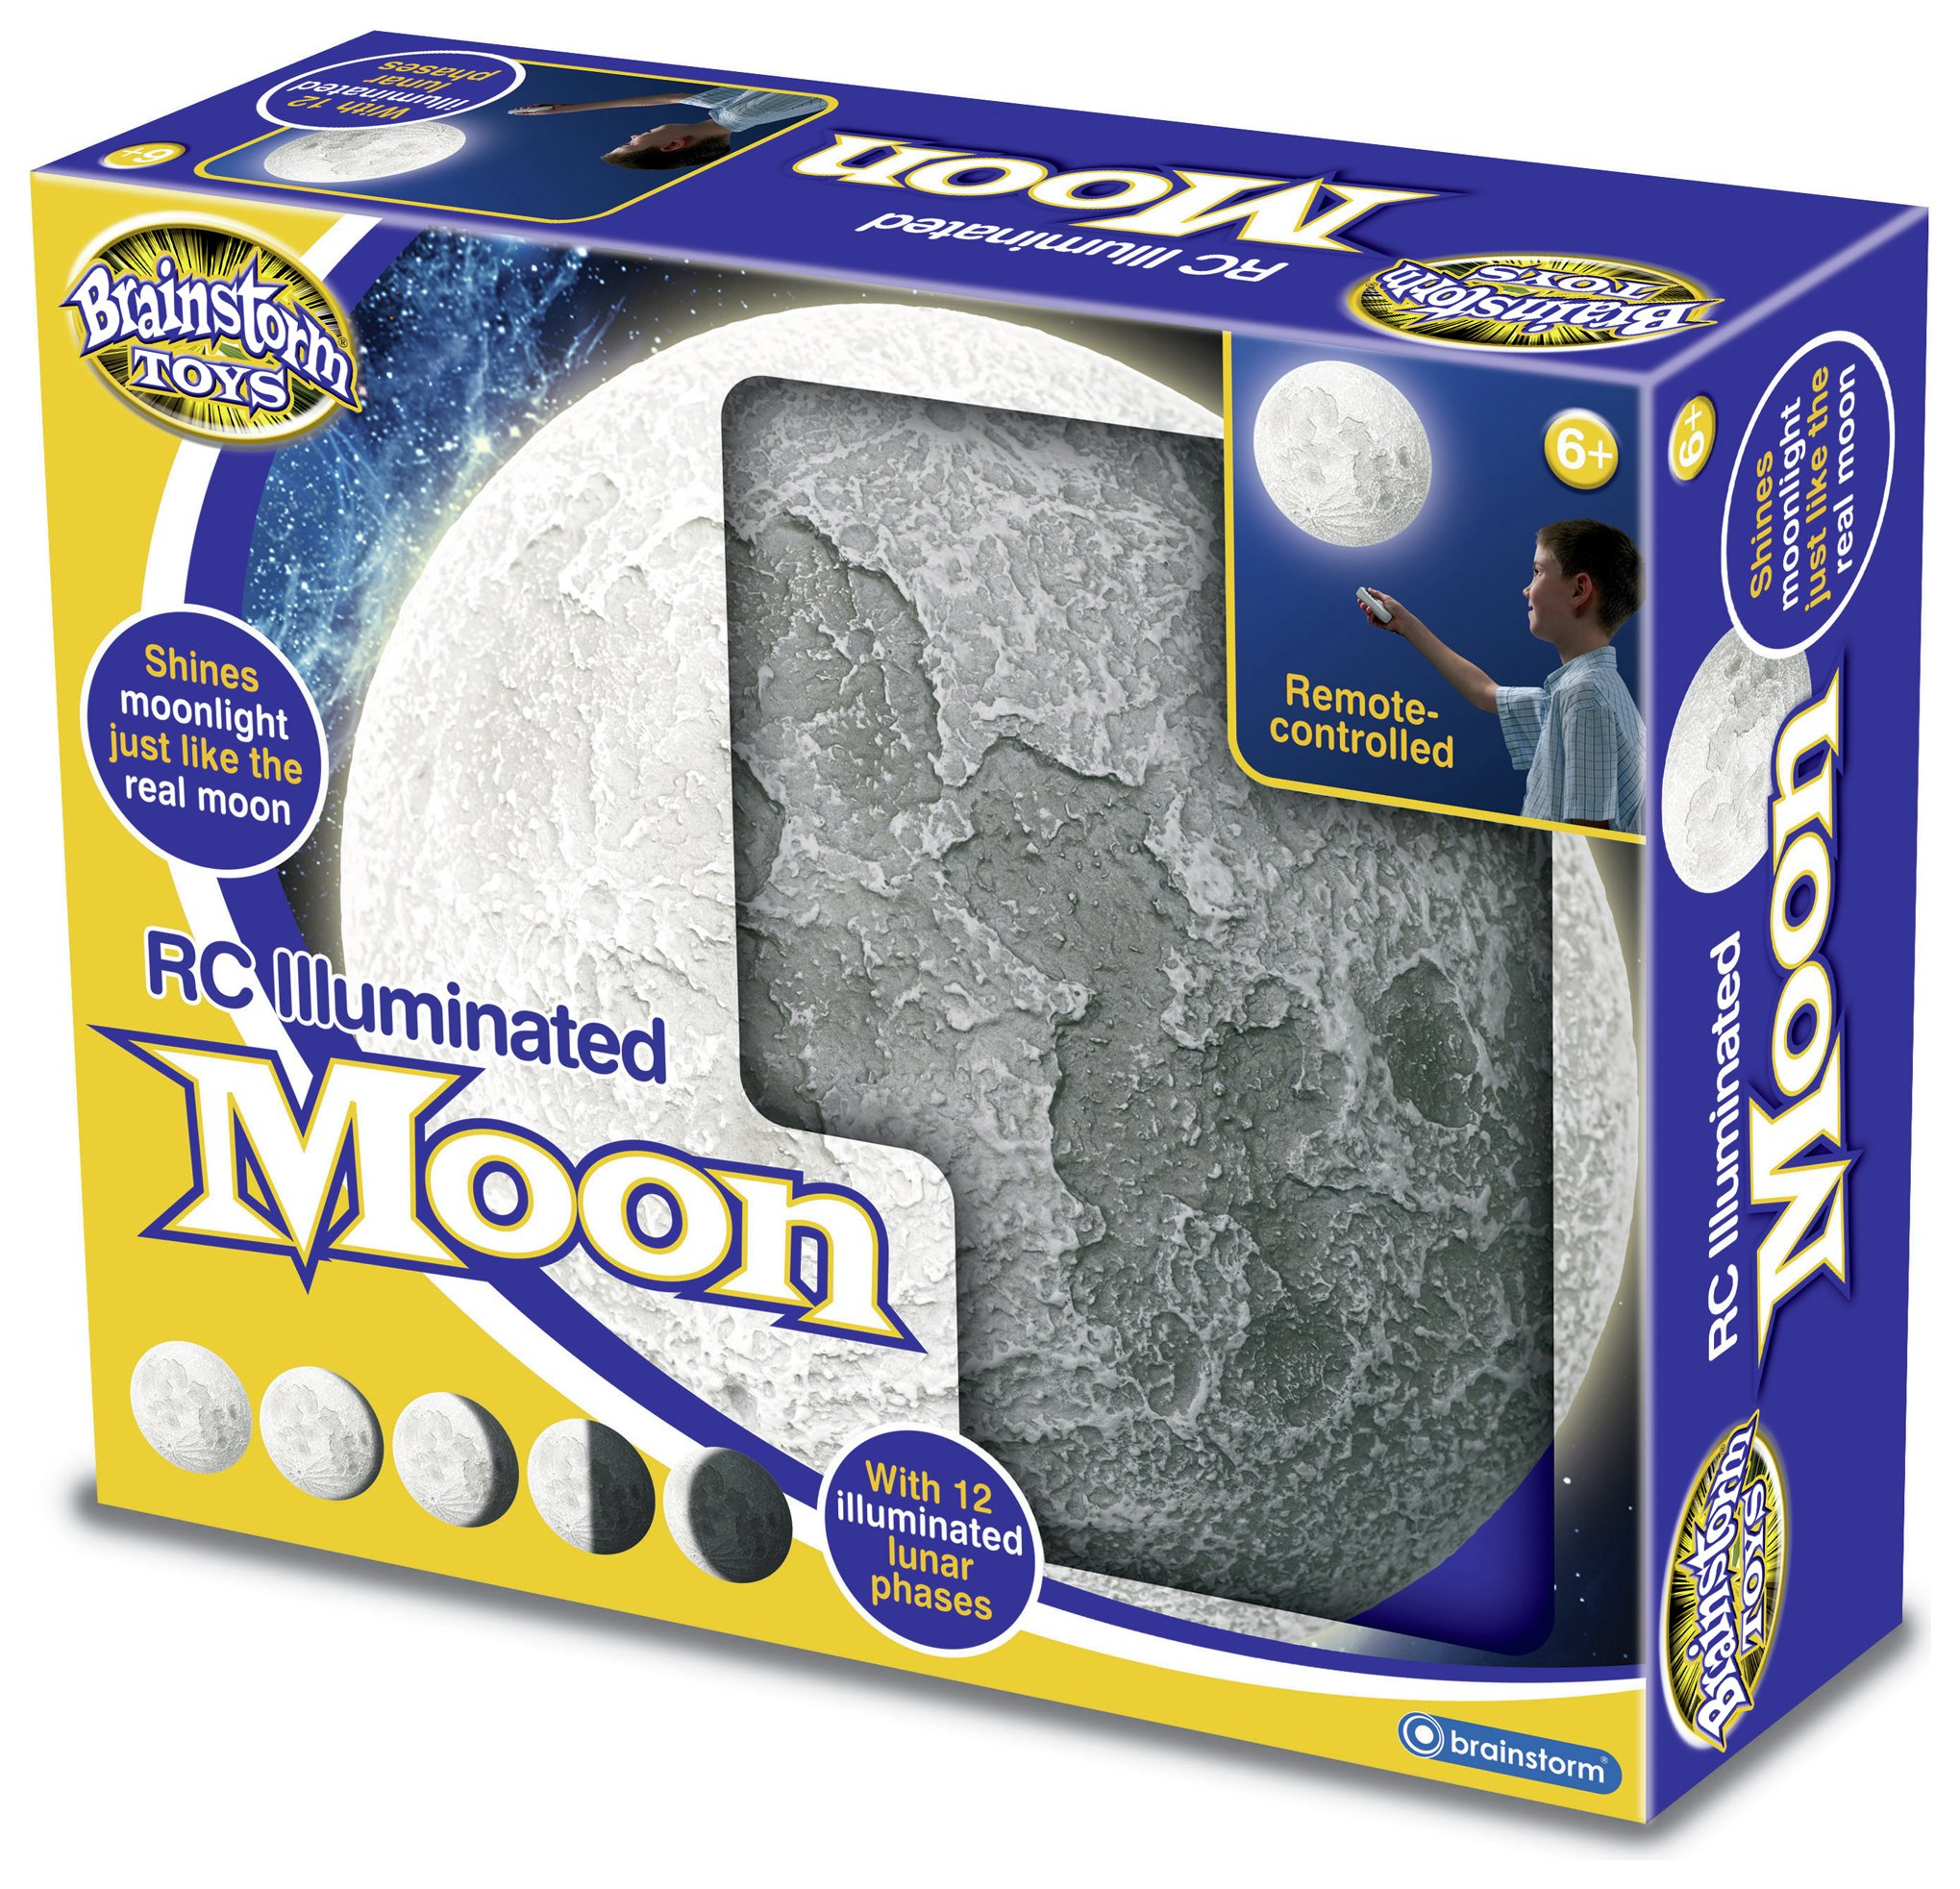 Image of Brainstorm Toys RC Illuminated Moon.